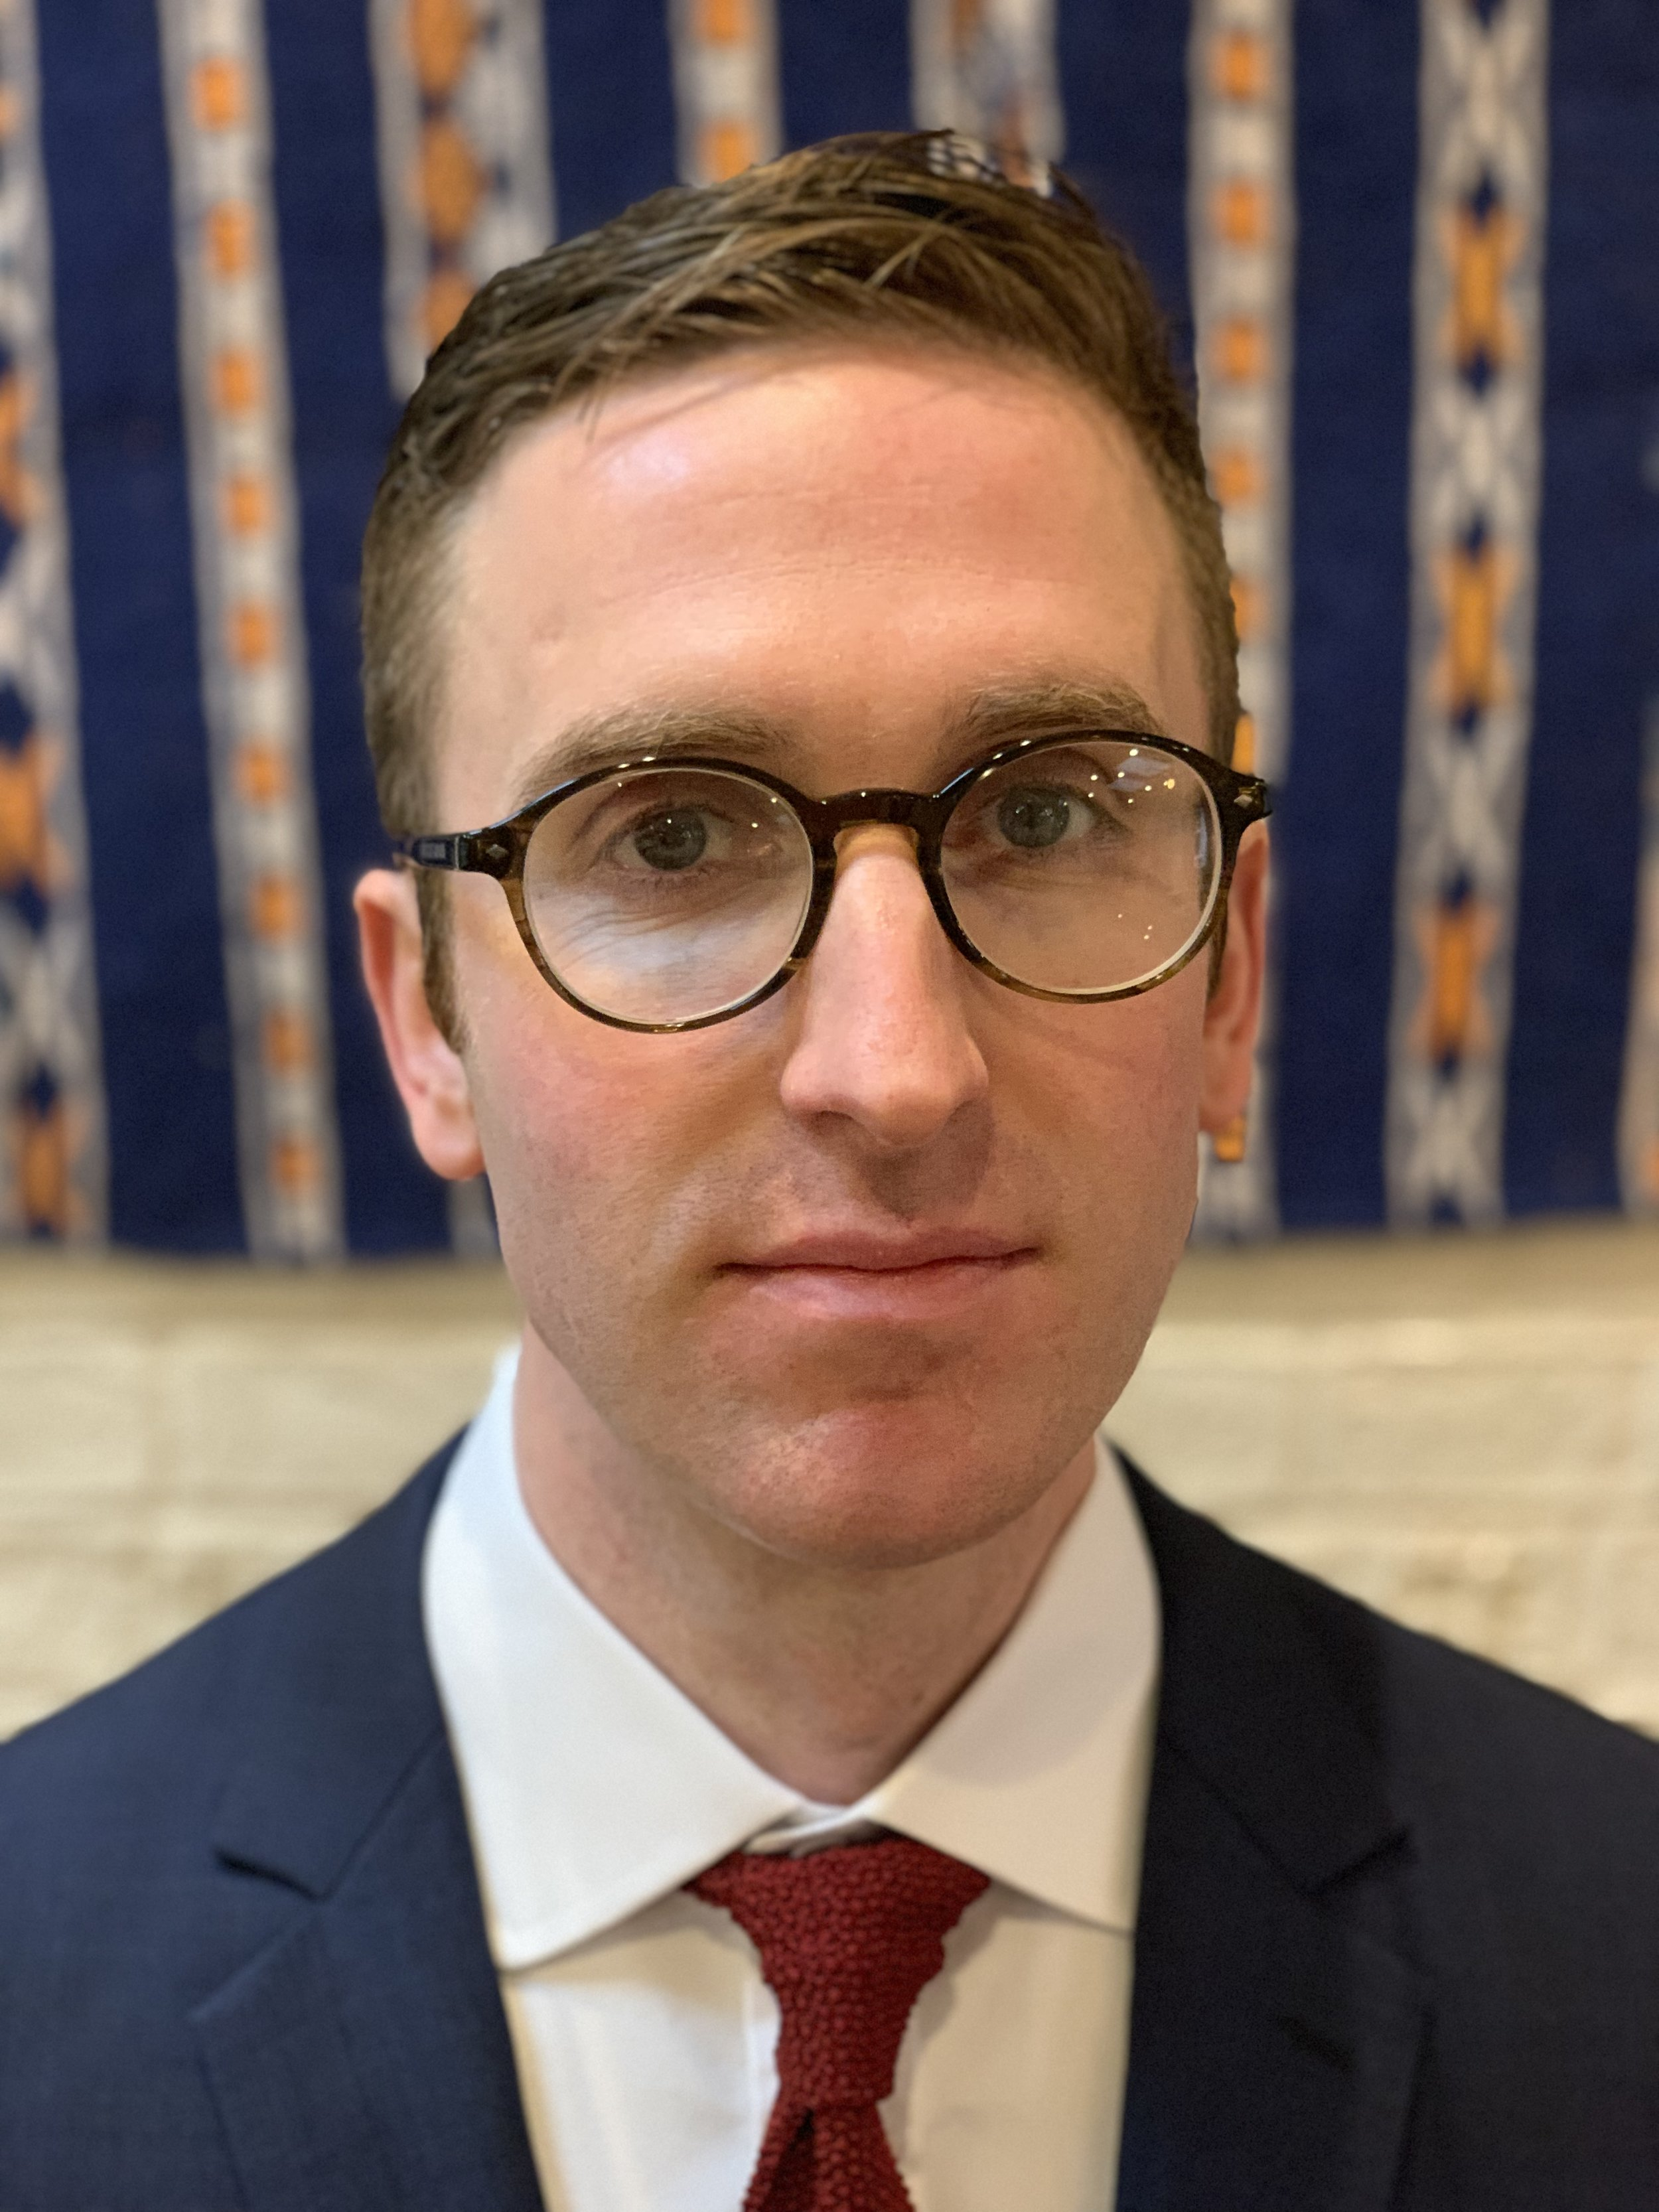 - I am an assistant professor in the Defense Analysis Department at the Naval Postgraduate School (NPS) and a nonresident fellow in the Nuclear Policy Program at the Carnegie Endowment for International Peace (CEIP). Prior to NPS, I was a fellow at Carnegie (2015-2017) and Lawrence Livermore National Laboratory (2013-2015). I received degrees in political science from the George Washington University (Ph.D.) and the University of California, Los Angeles (B.A.). I grew up in the Bay Area, close to where I now work and live with my wife.